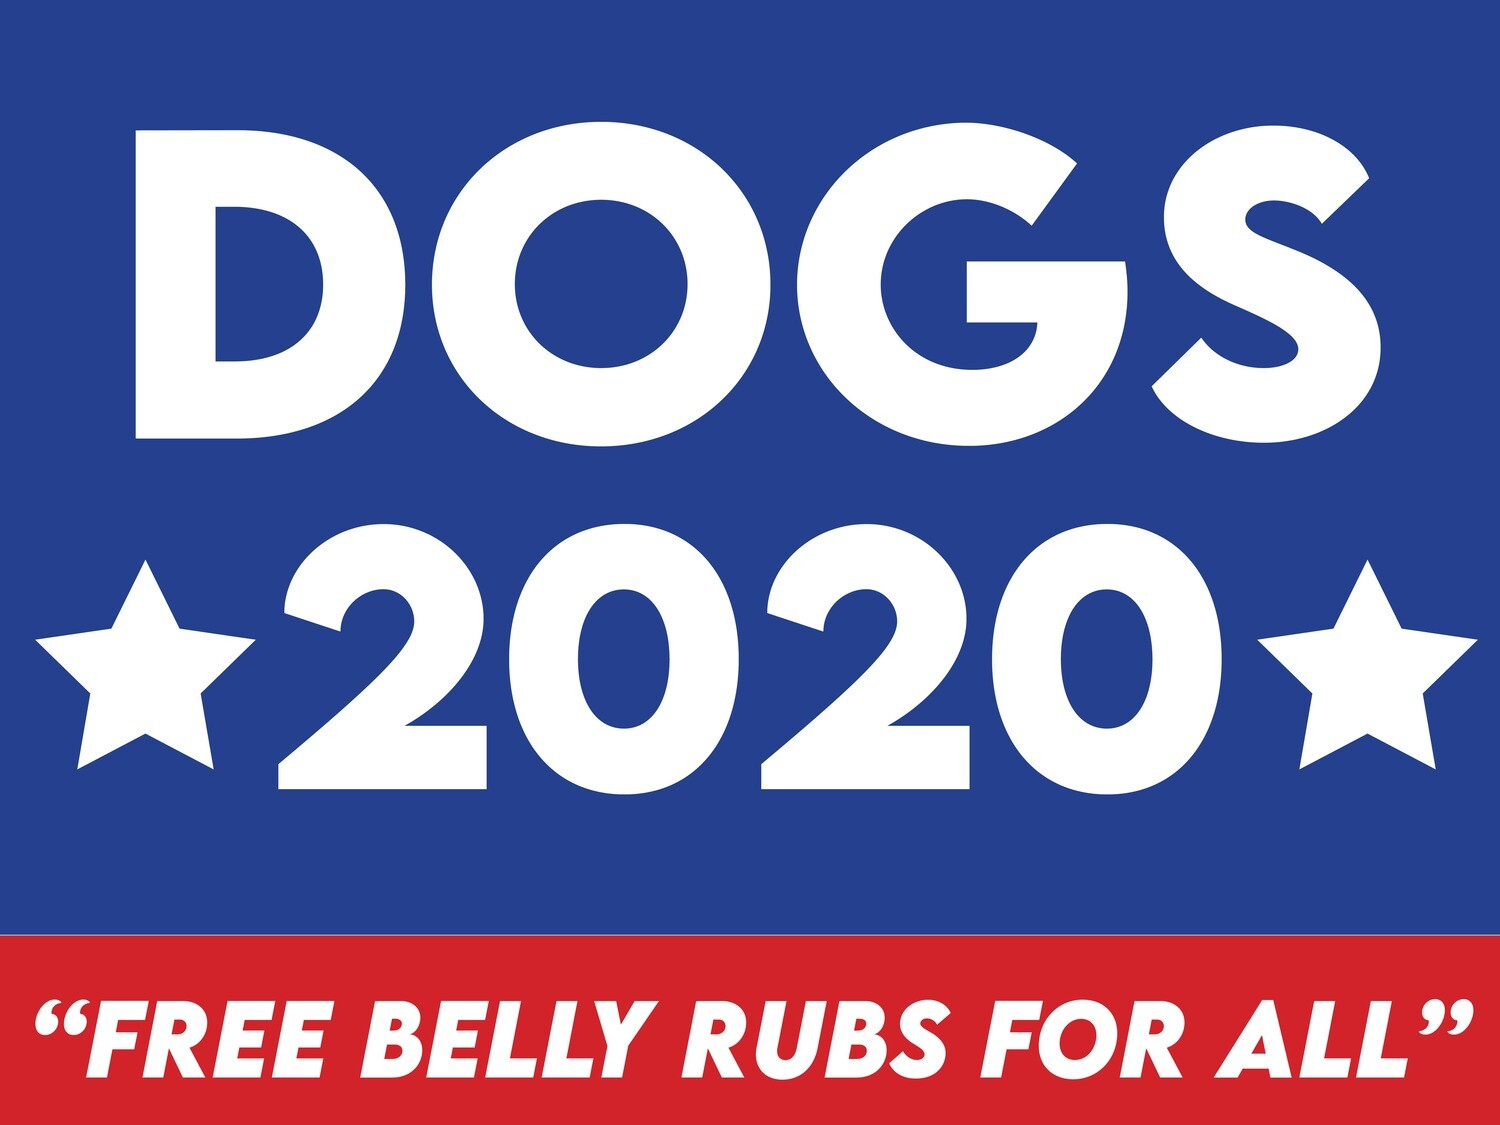 """DOGS 2020"" Sign"